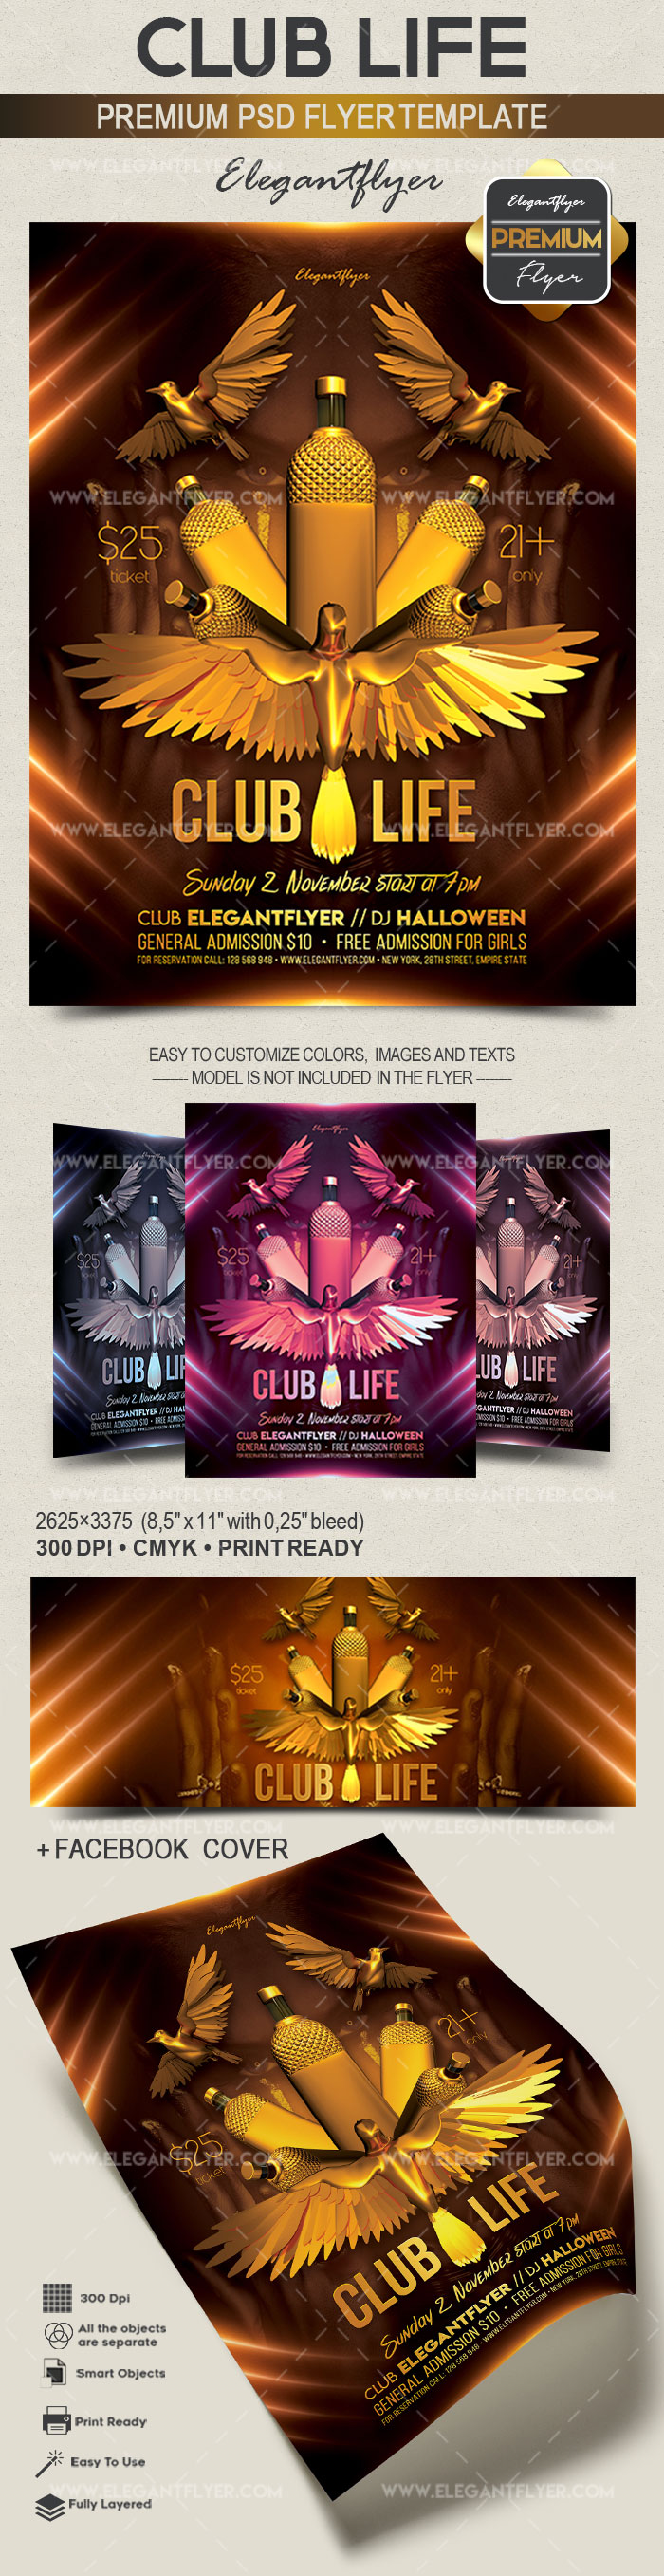 Club Life – Flyer PSD Template + Facebook Cover